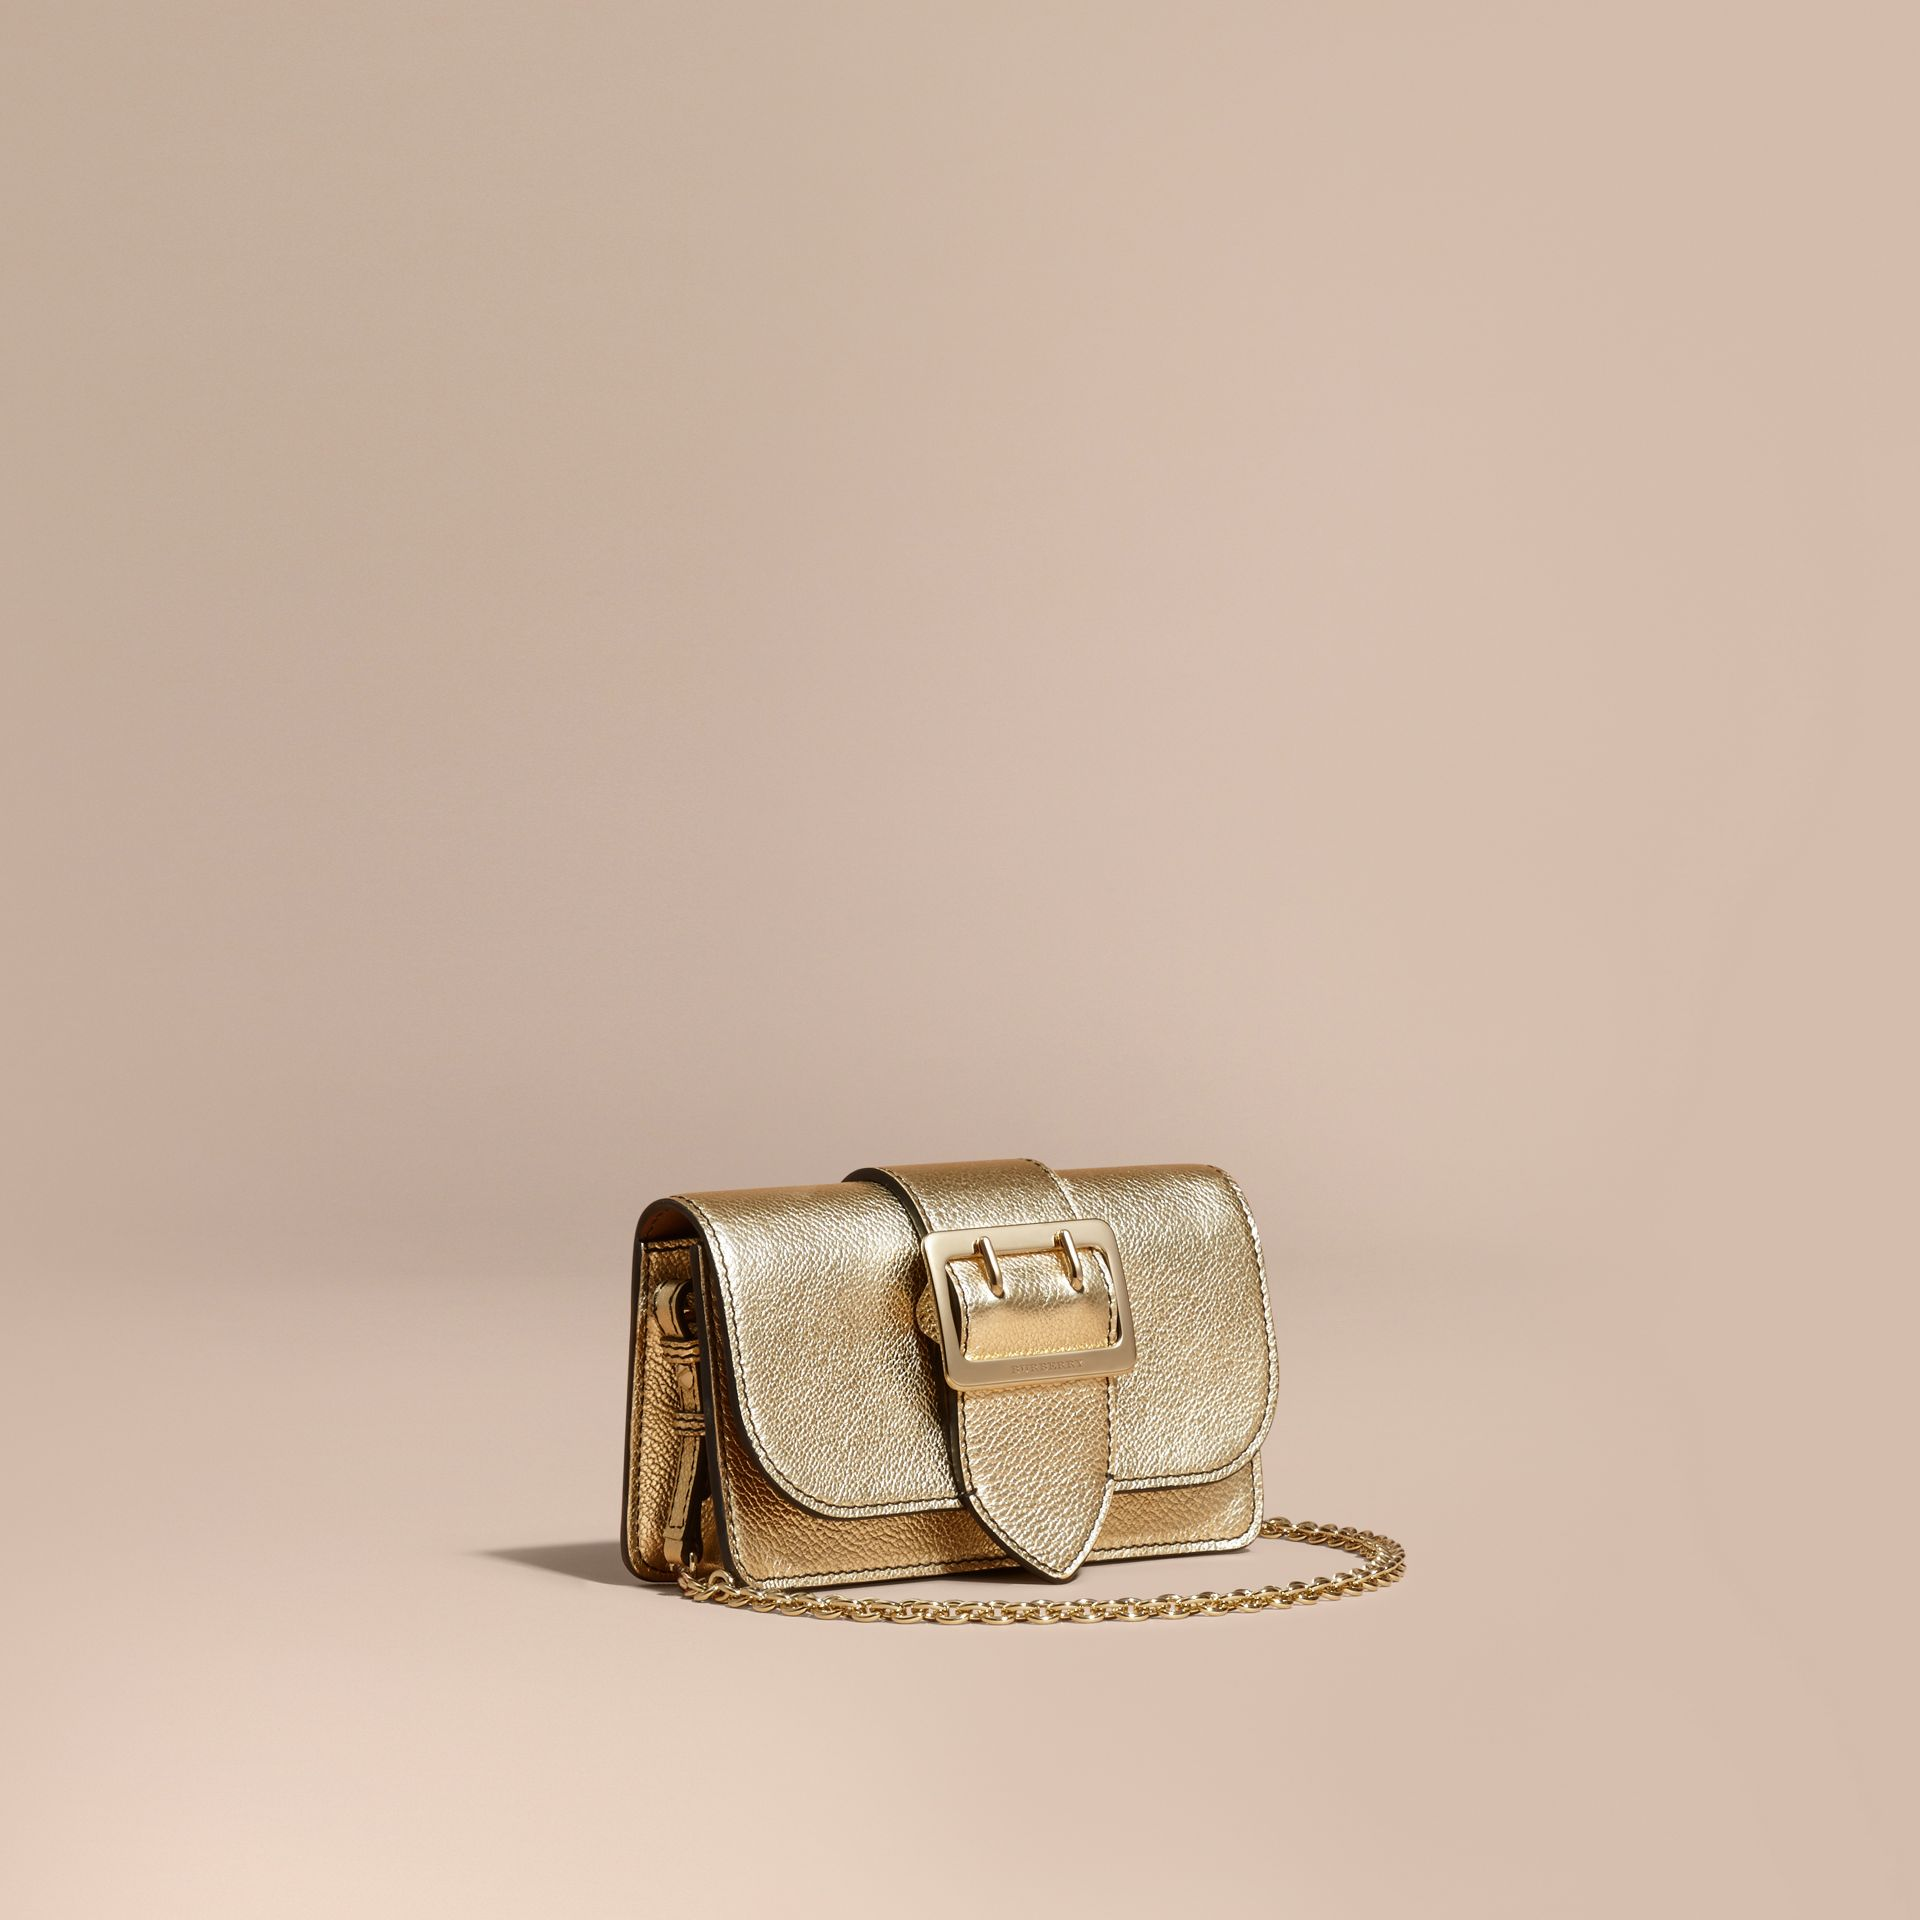 The Mini Buckle Bag in Metallic Grainy Leather in Gold - gallery image 1